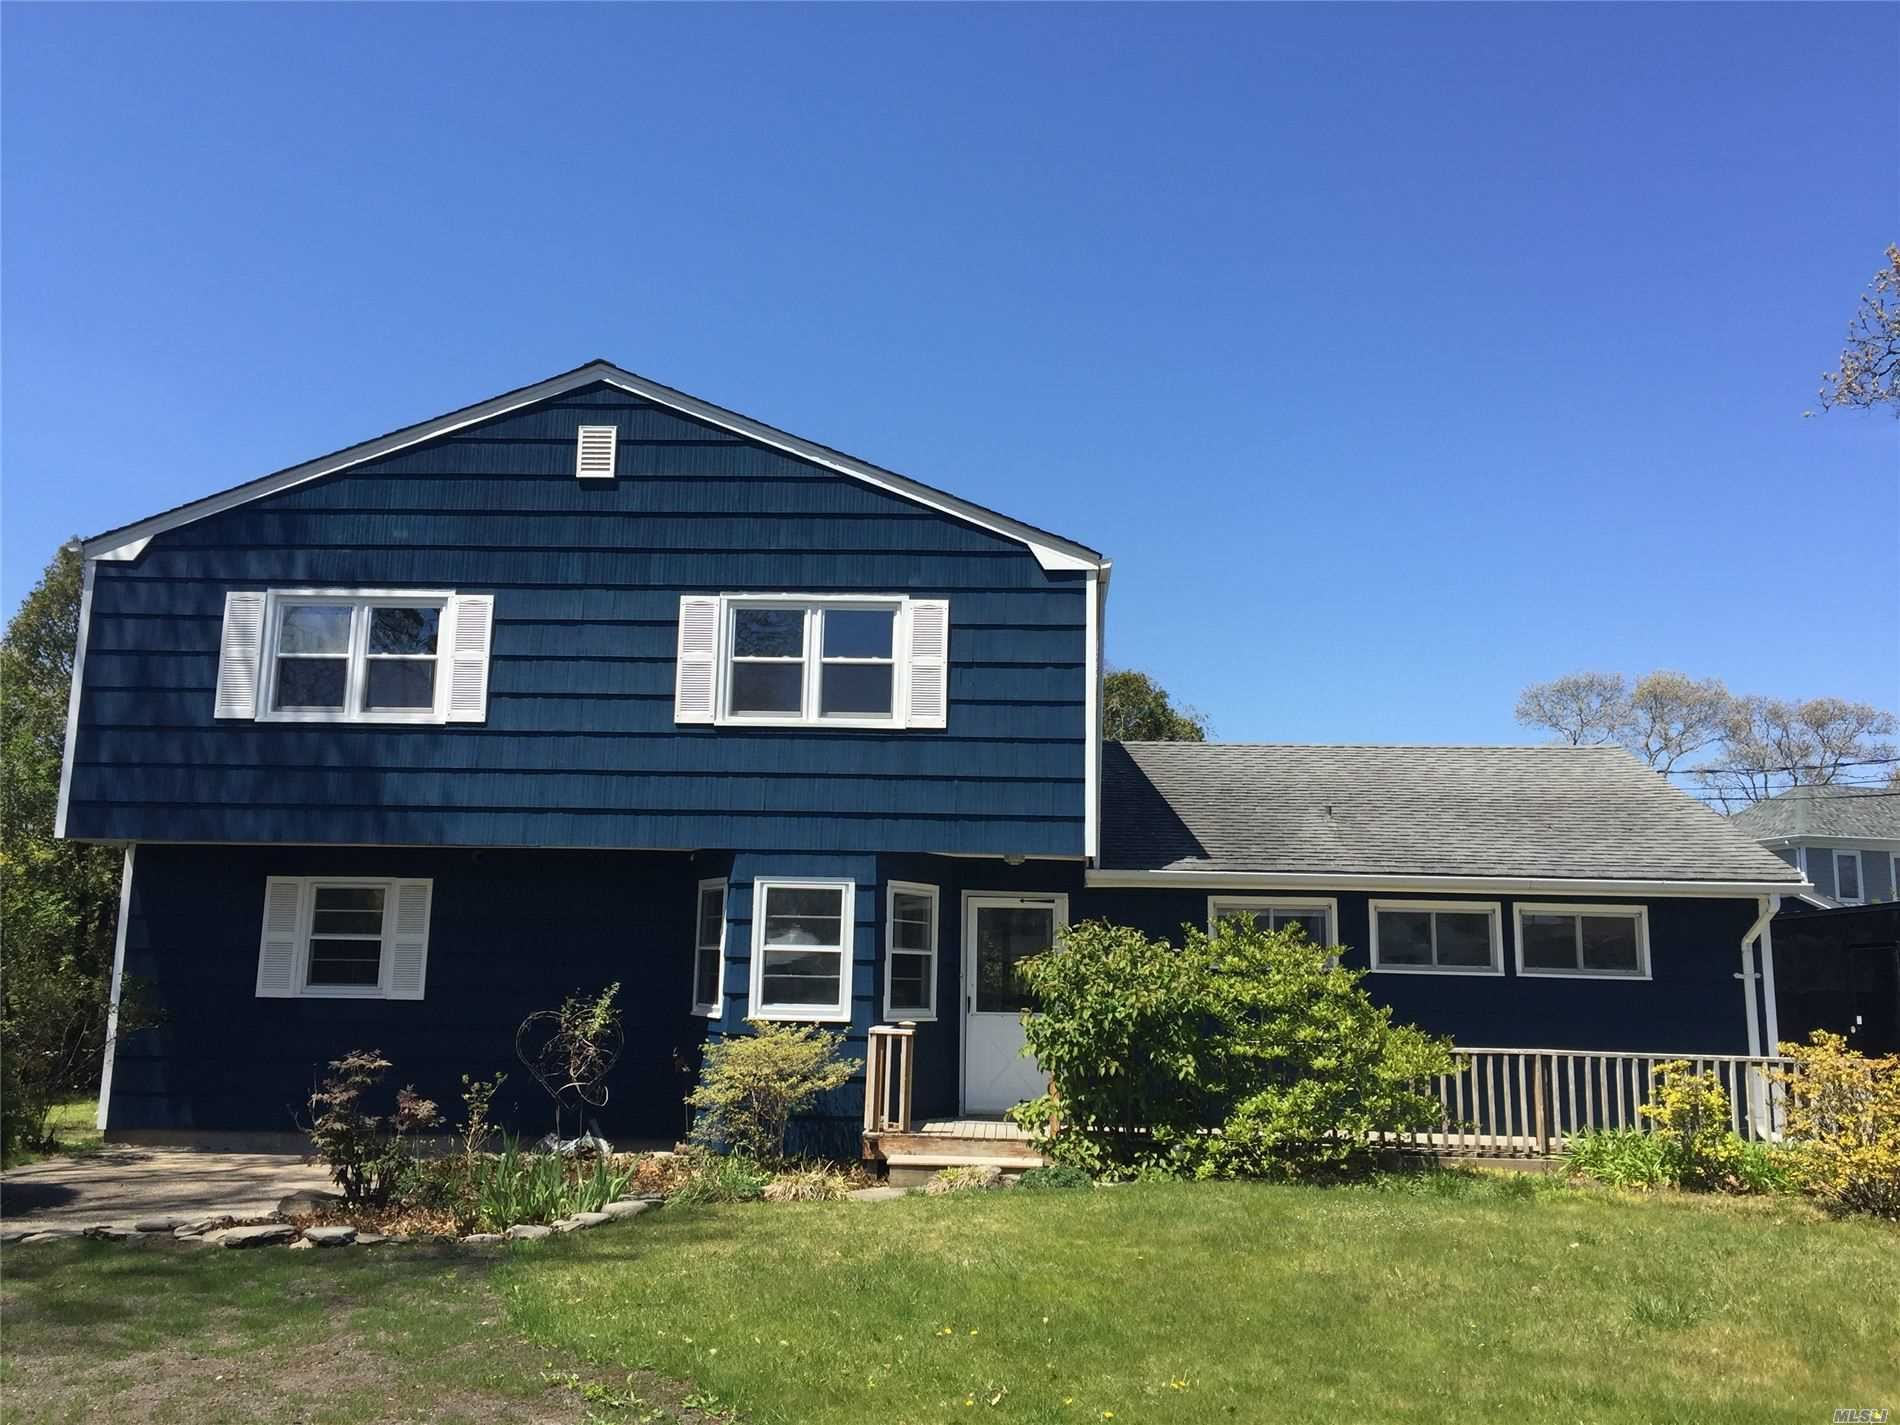 10 Whiting Rd, East Quogue, NY 11942 - MLS#: 3217345